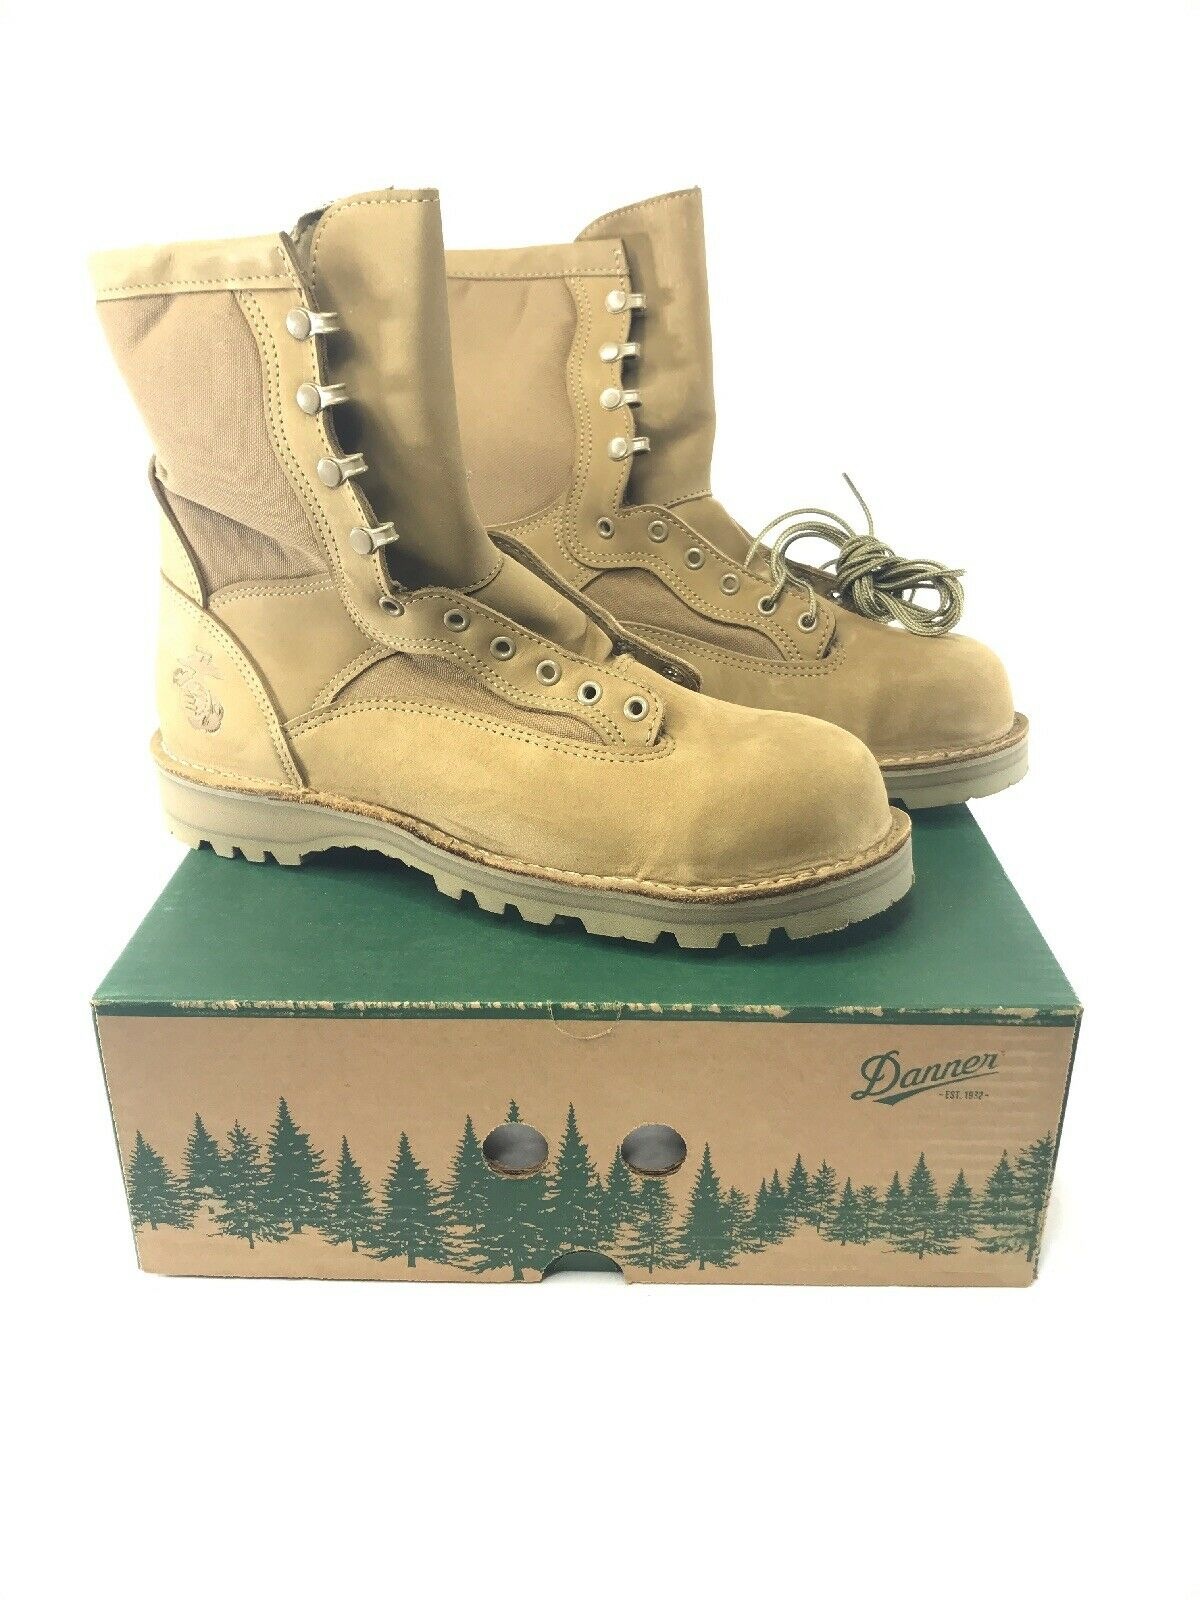 Danner Marine Expeditionary Boots HOT ST NIB USMC 11.5 R